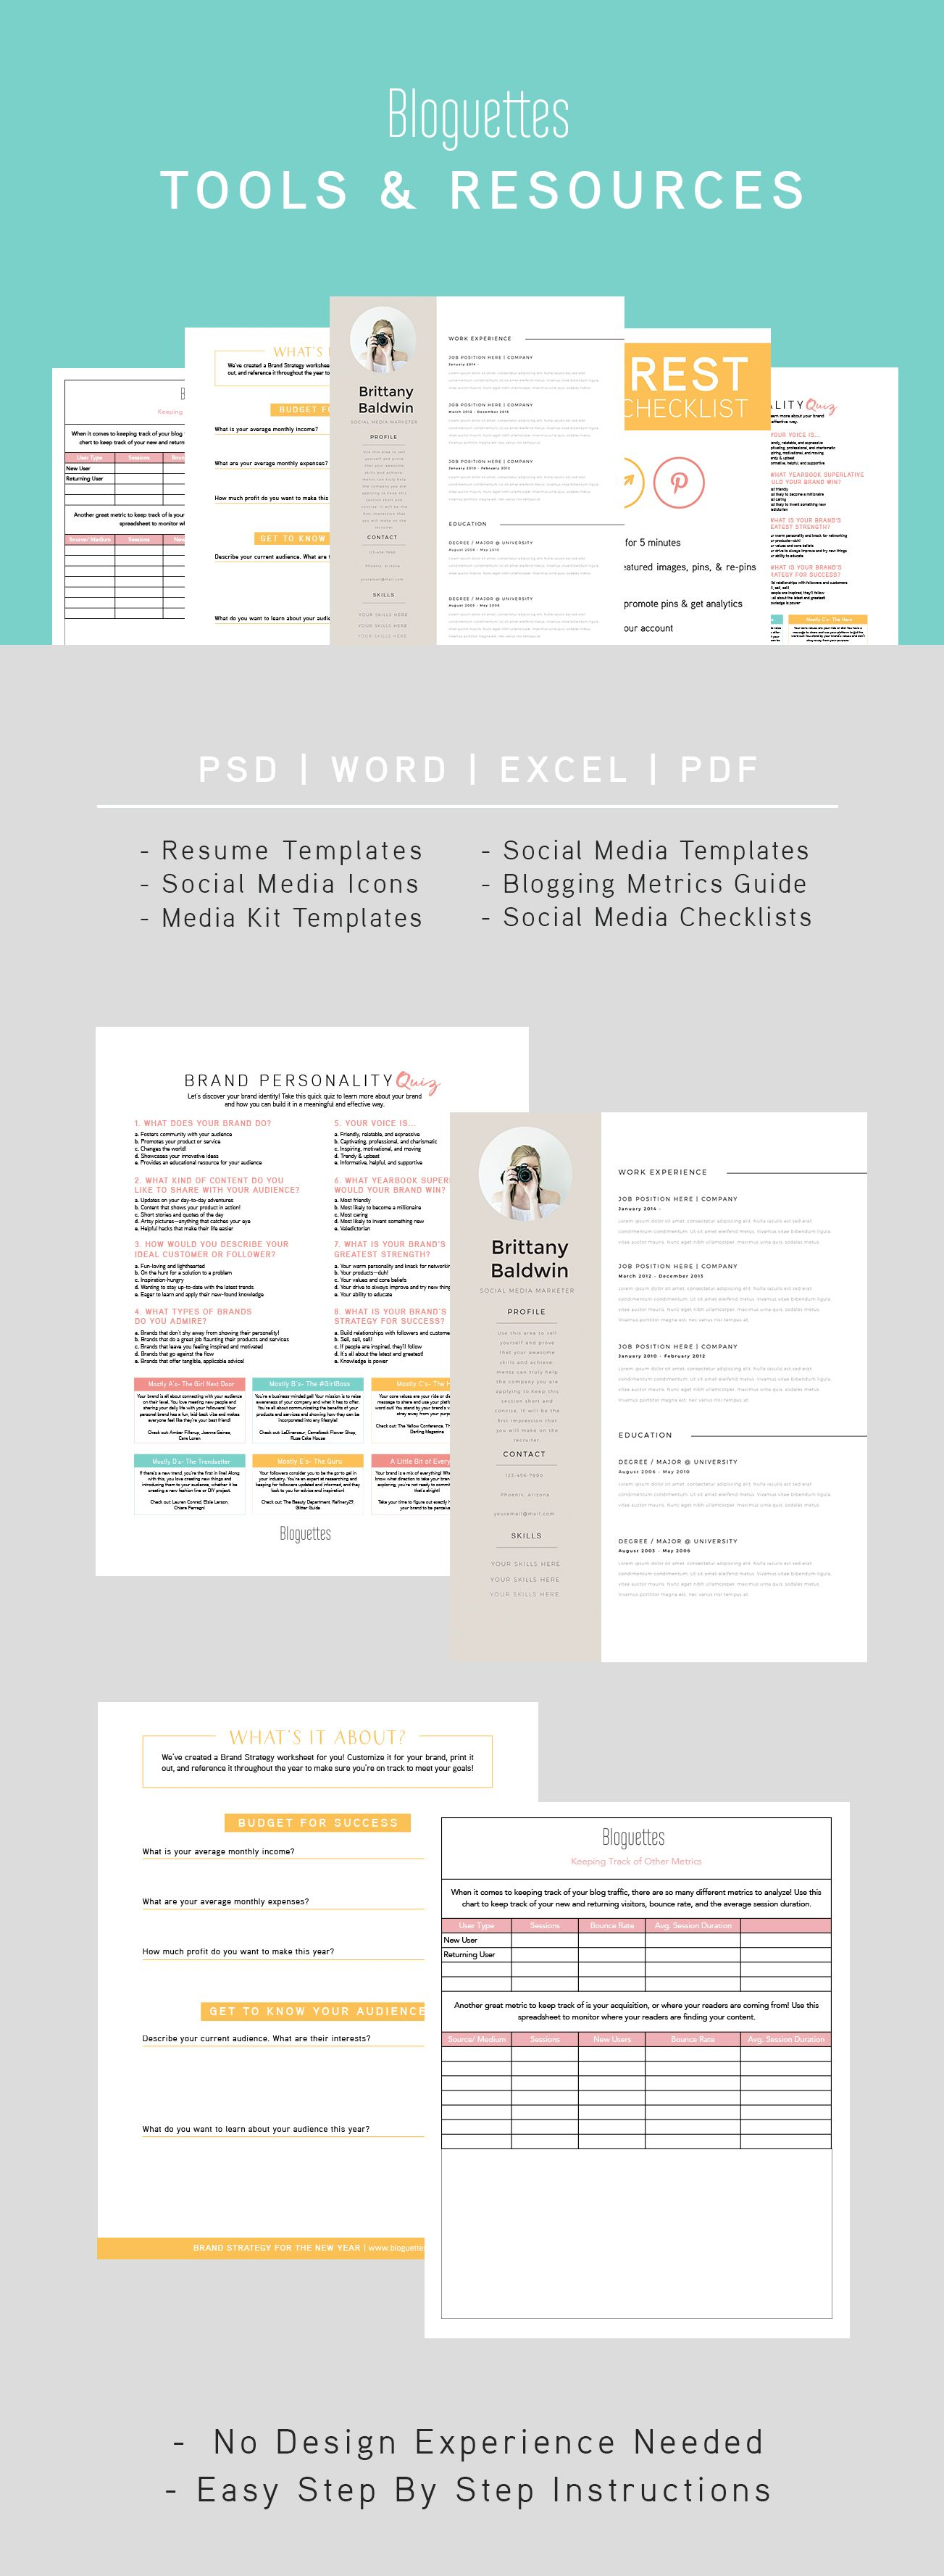 If You're In Need Of A Social Media, Blogging, Or Branding Tool We've Got  One. Check Out The Bloguettes Toolbox For All Your Downloadable Needs!